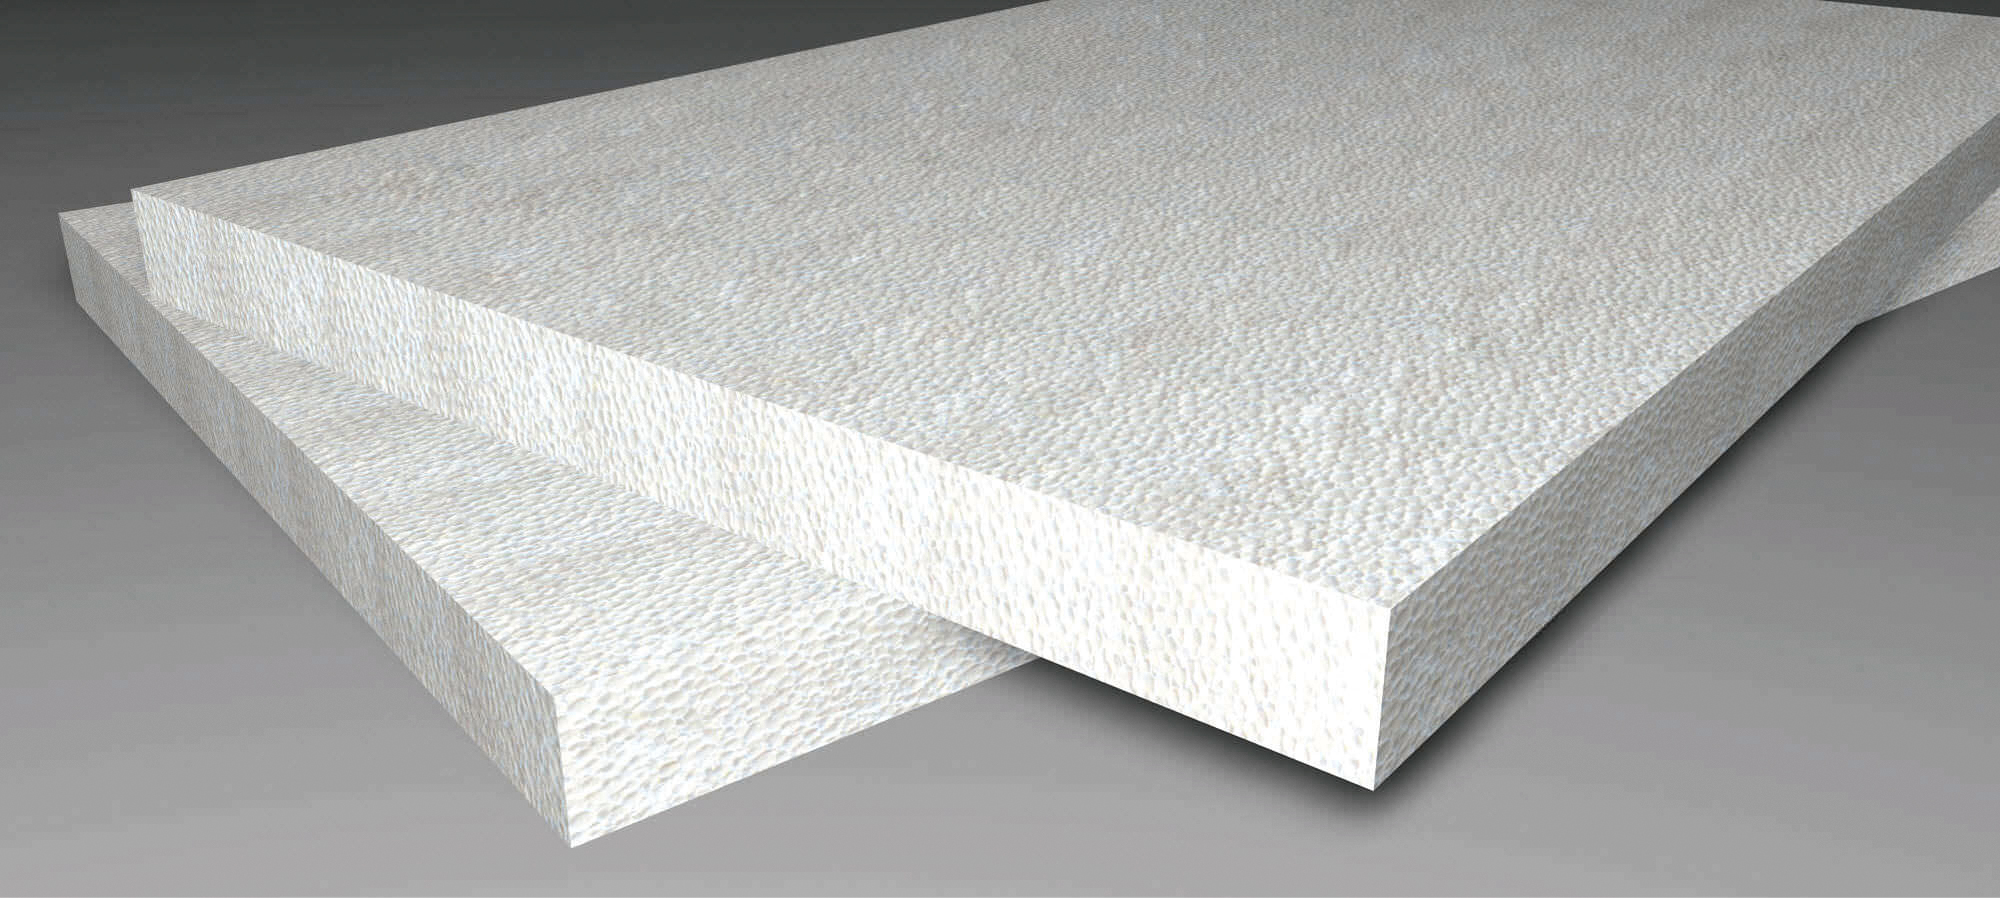 Isolation phonique plafond polystyrene isolation id es for Polystyrene isolation mur interieur